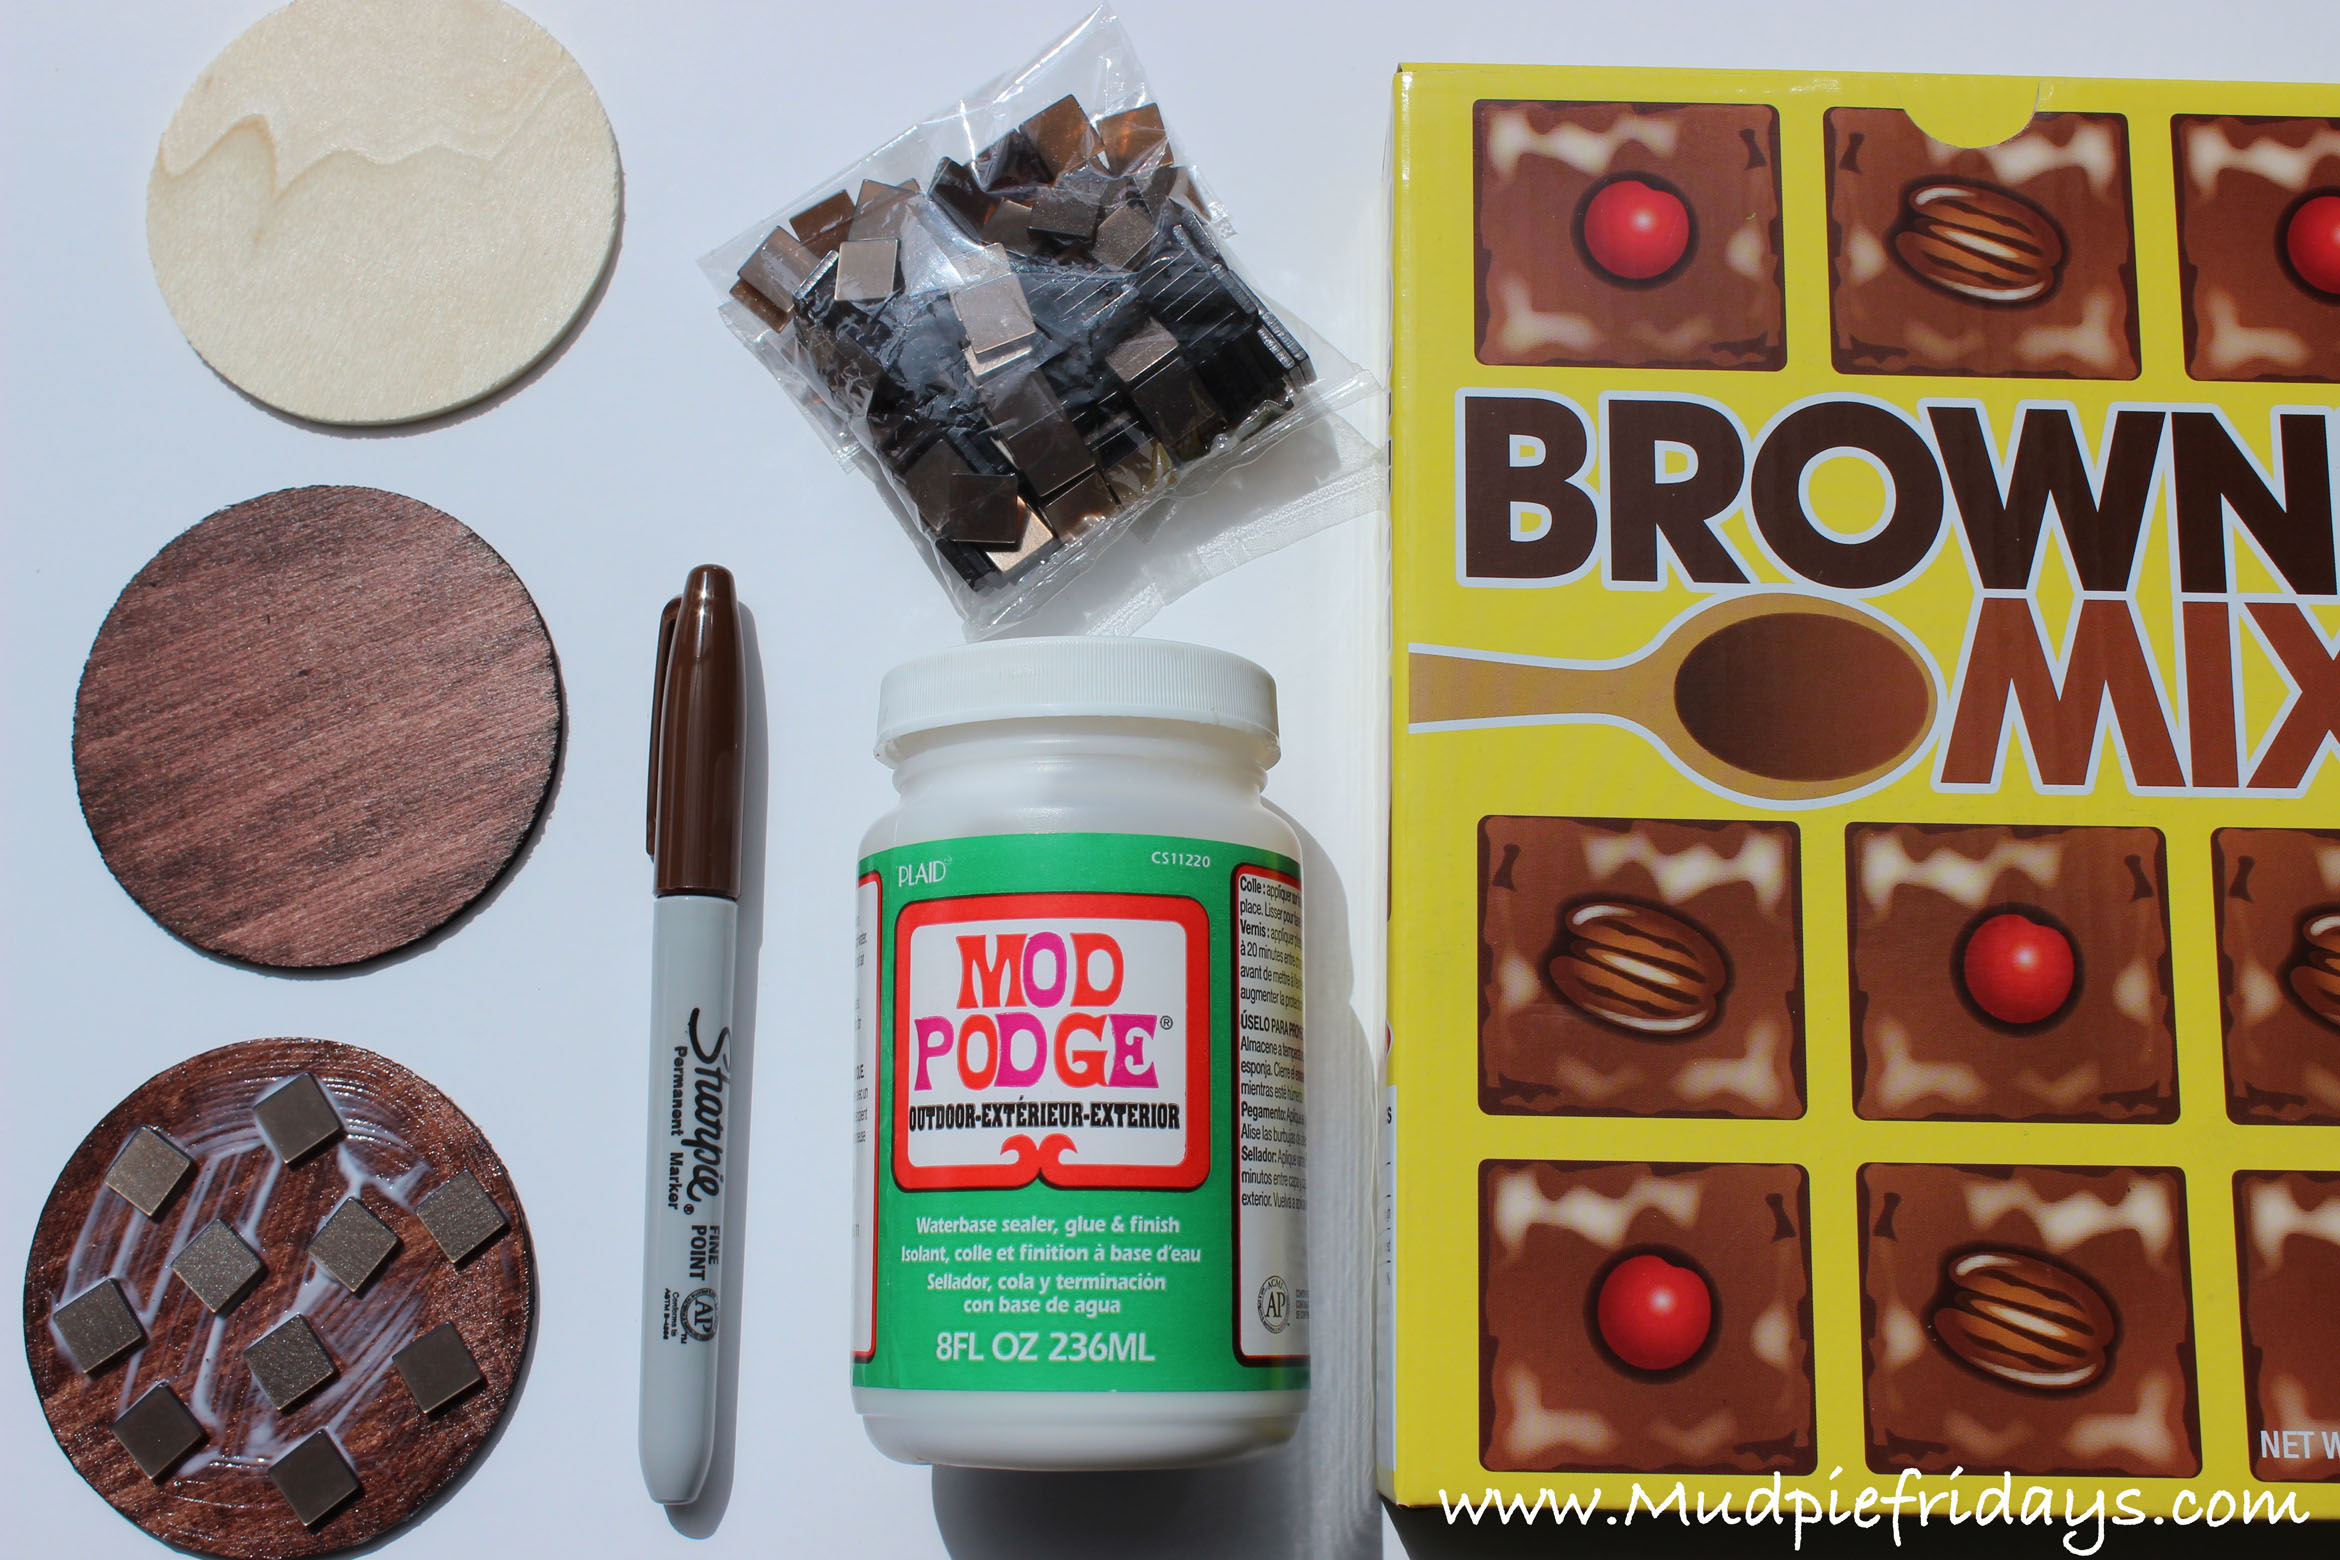 Playfood Chocolate Brownies